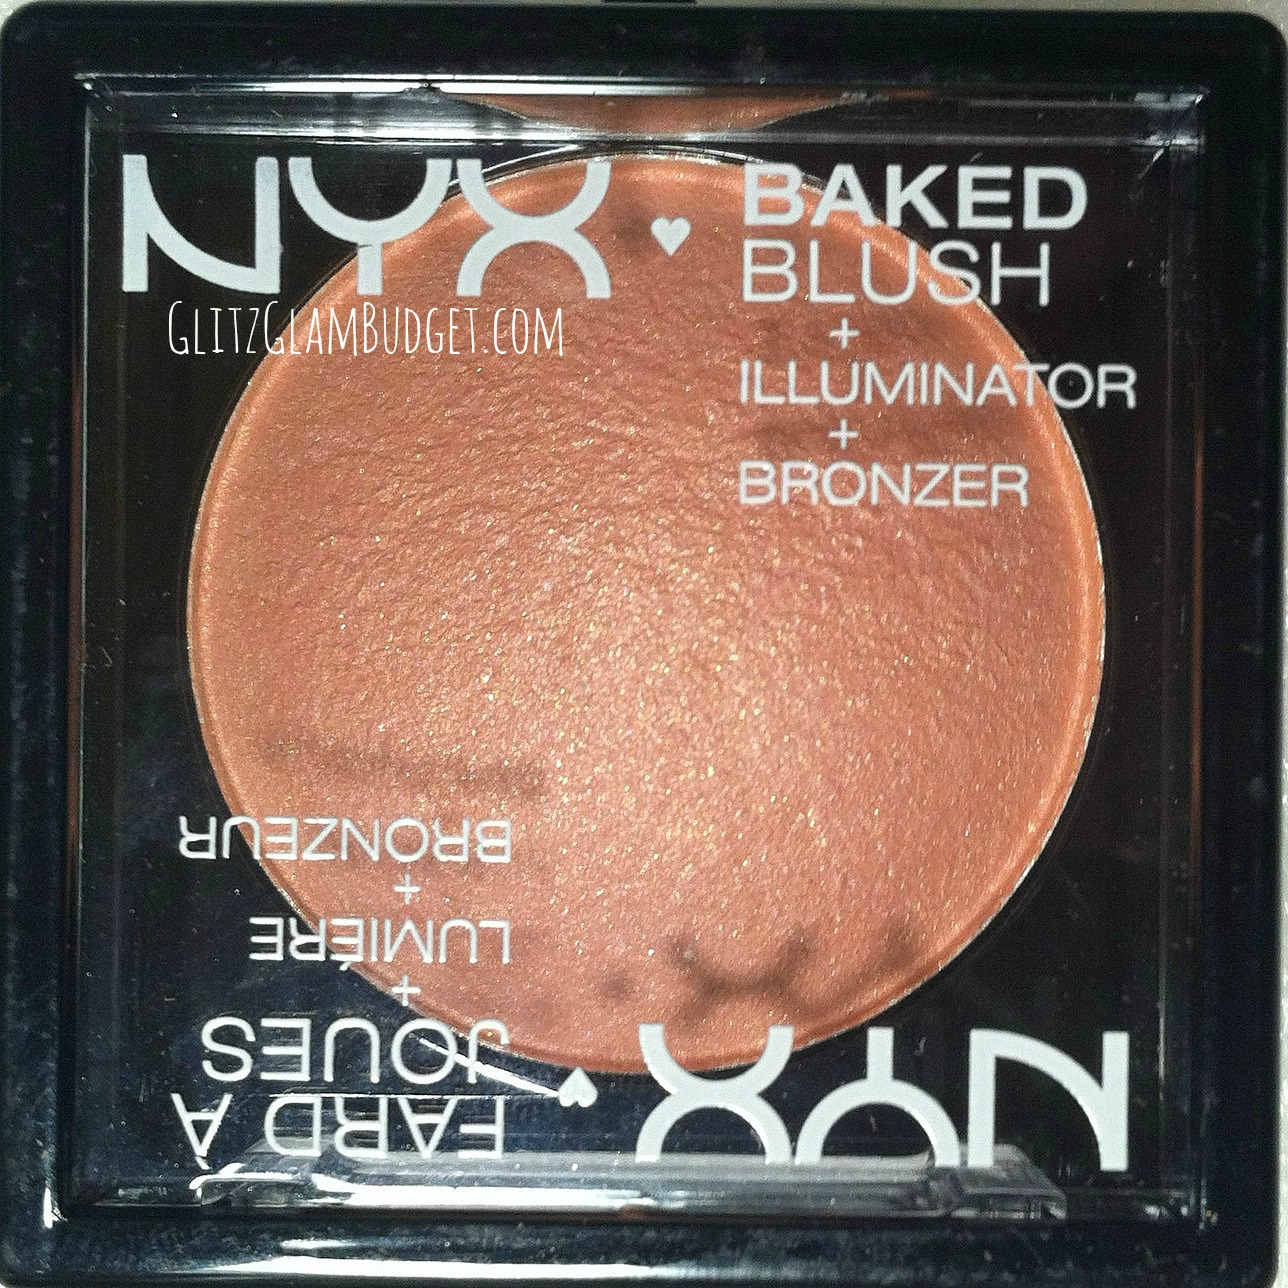 NEW NYX Cosmetics Baked Blush in Sugar Mama Swatch and Review